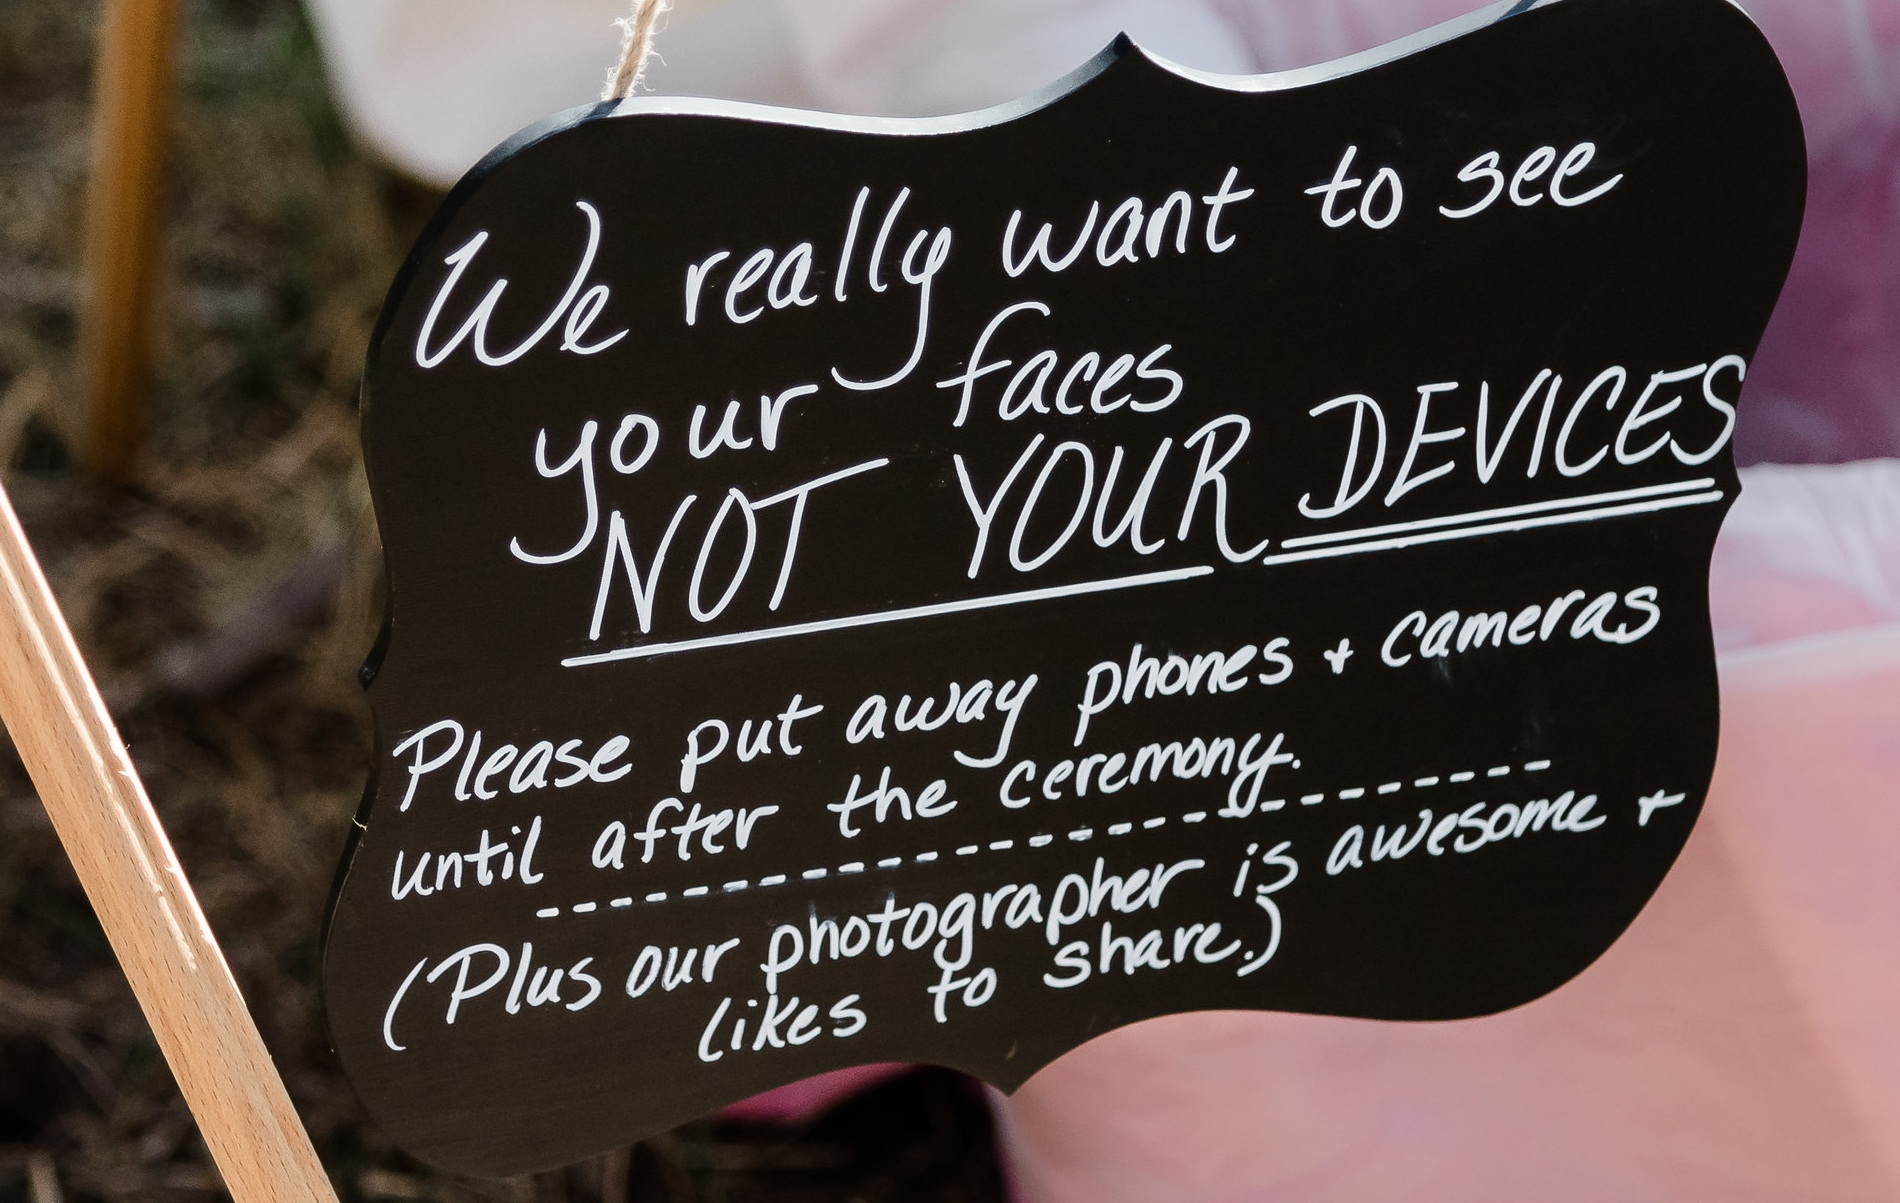 Unplugged wedding no guest cameras at ceremony sign idea